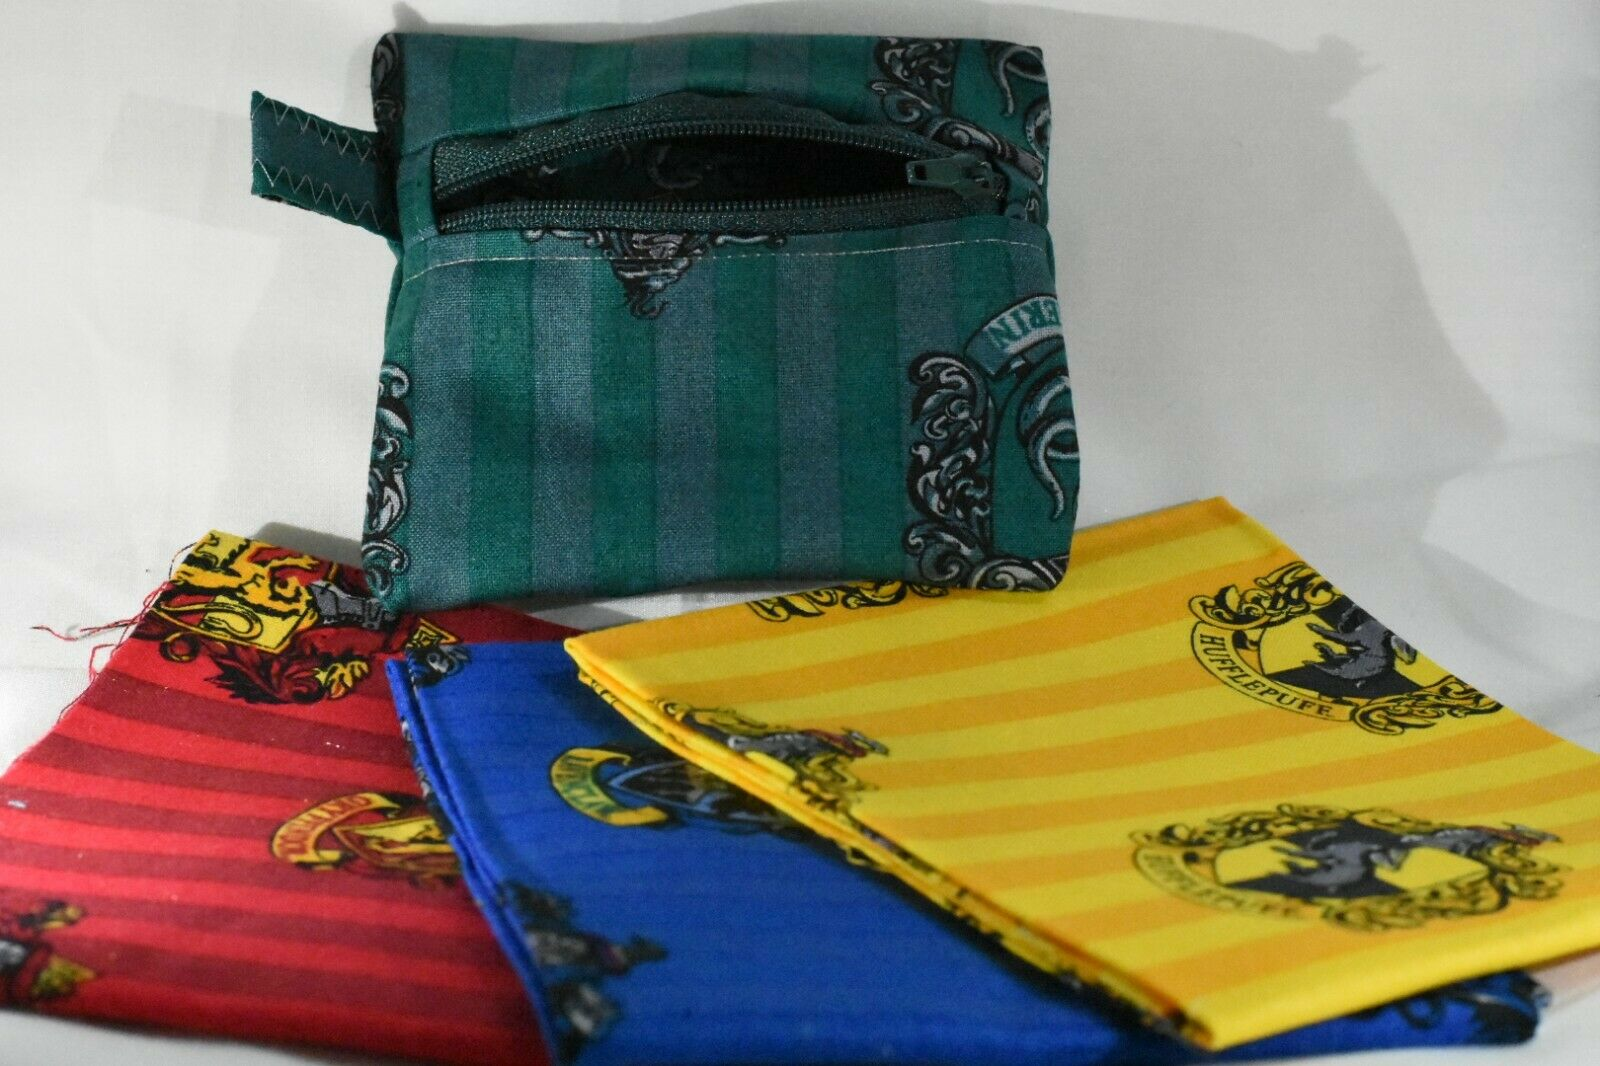 Harry Potter Personalised Zip Purse Slytherin Ravenclaw Hufflepuff Gryffindor